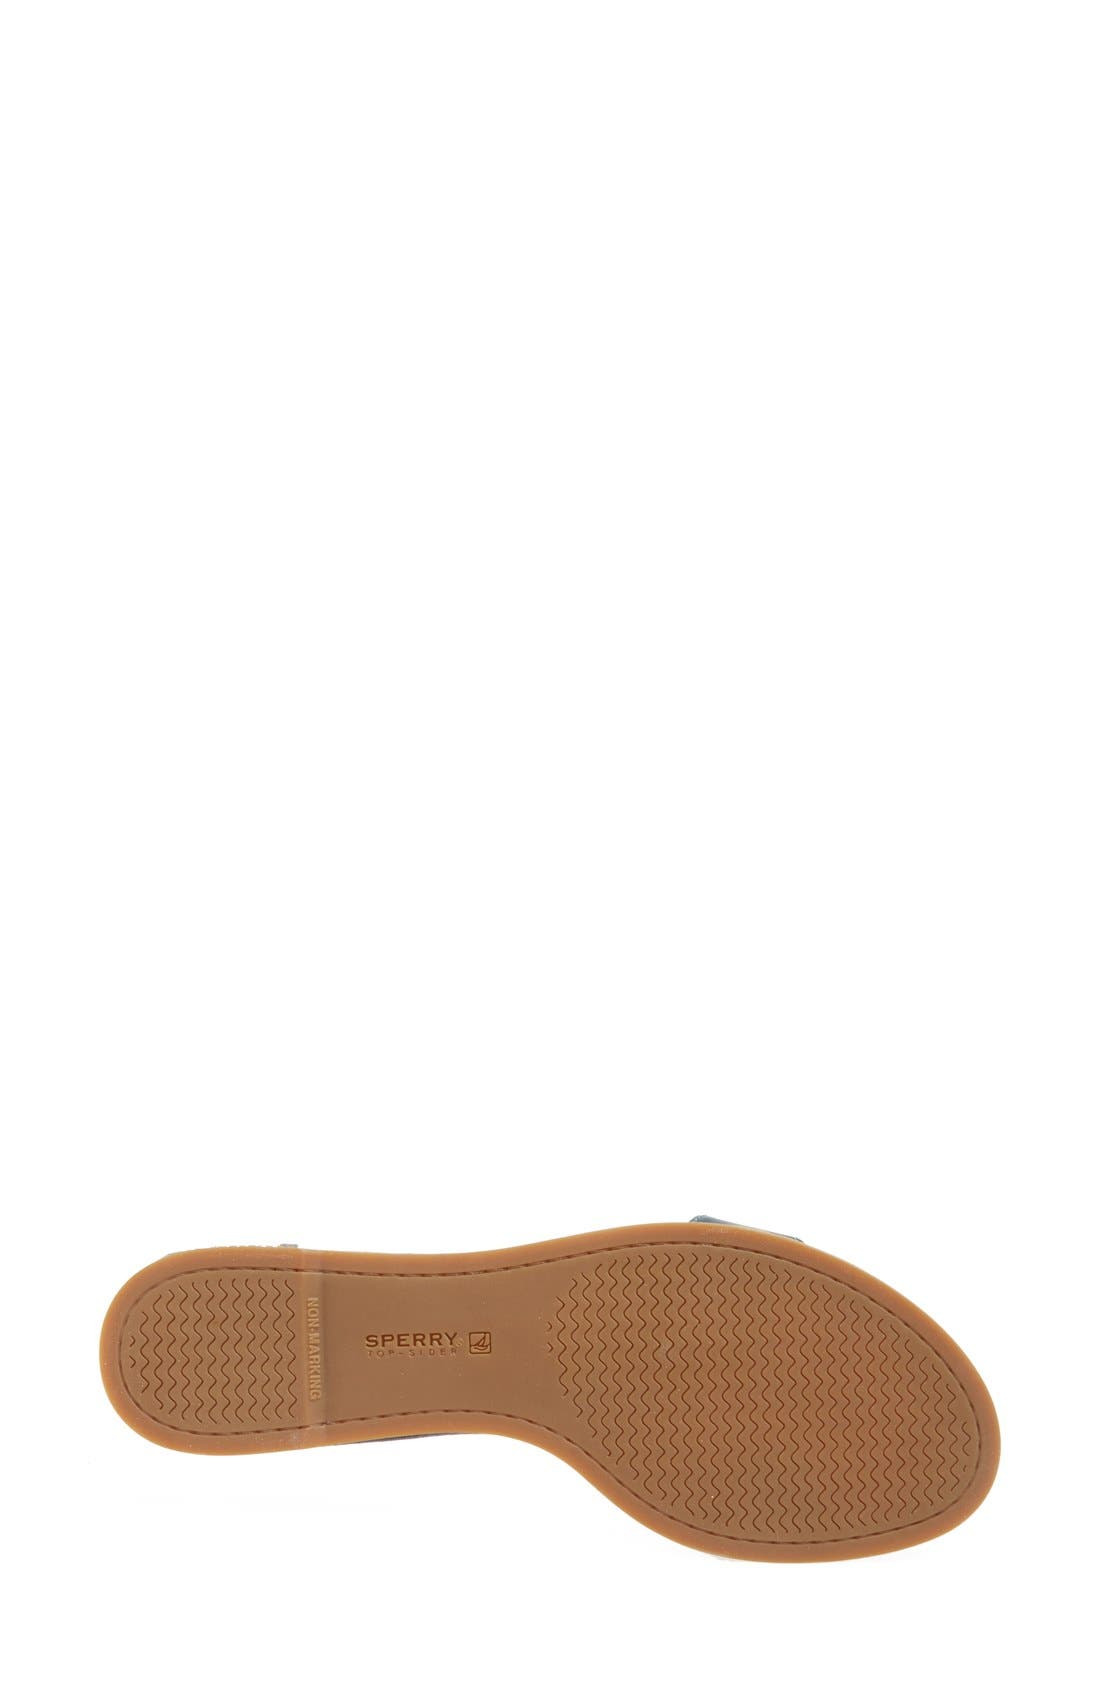 Alternate Image 4  - SPERRY ISHA SANDAL